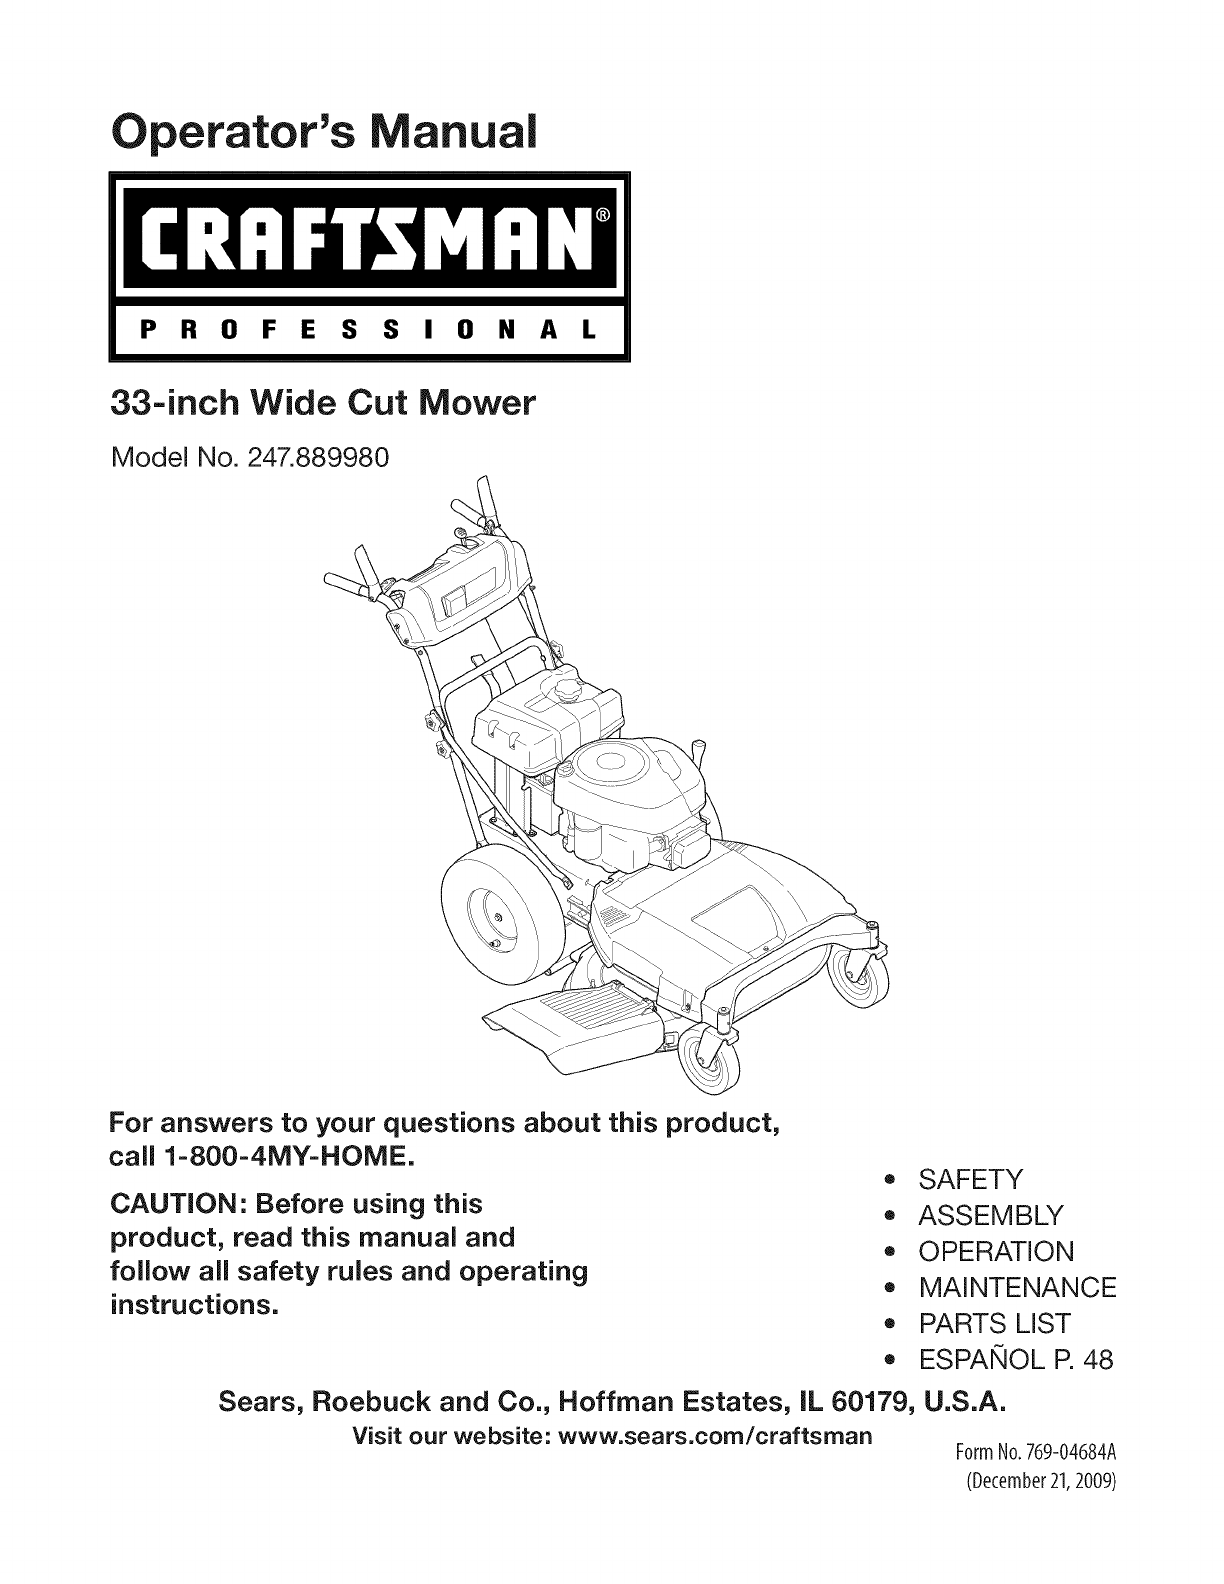 e941d769 5f50 49c0 9353 4a40e8257528 bg1 craftsman lawn mower 247 889980 user guide manualsonline com craftsman ys 4500 wiring diagram at edmiracle.co